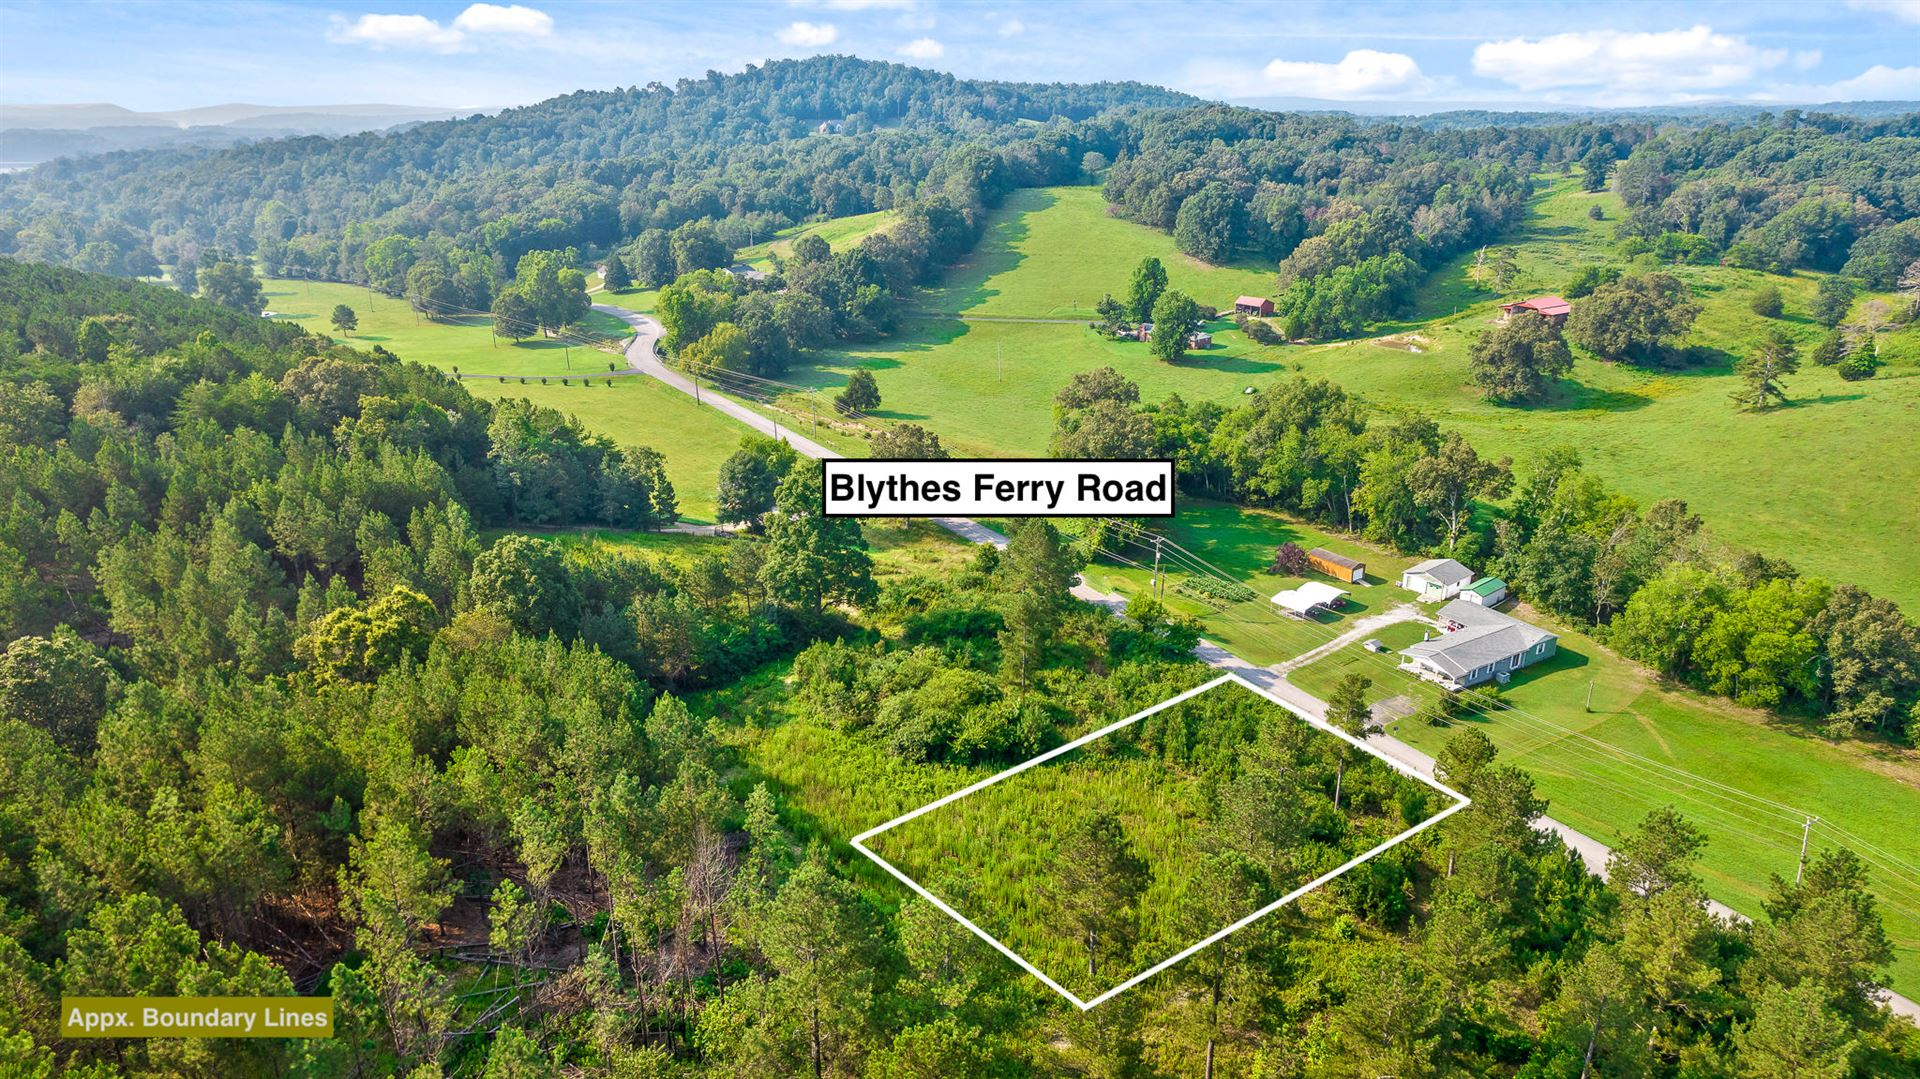 Photo for 2 Blythes Ferry Rd #Lot 13, Dayton, TN 37321 (MLS # 1340351)